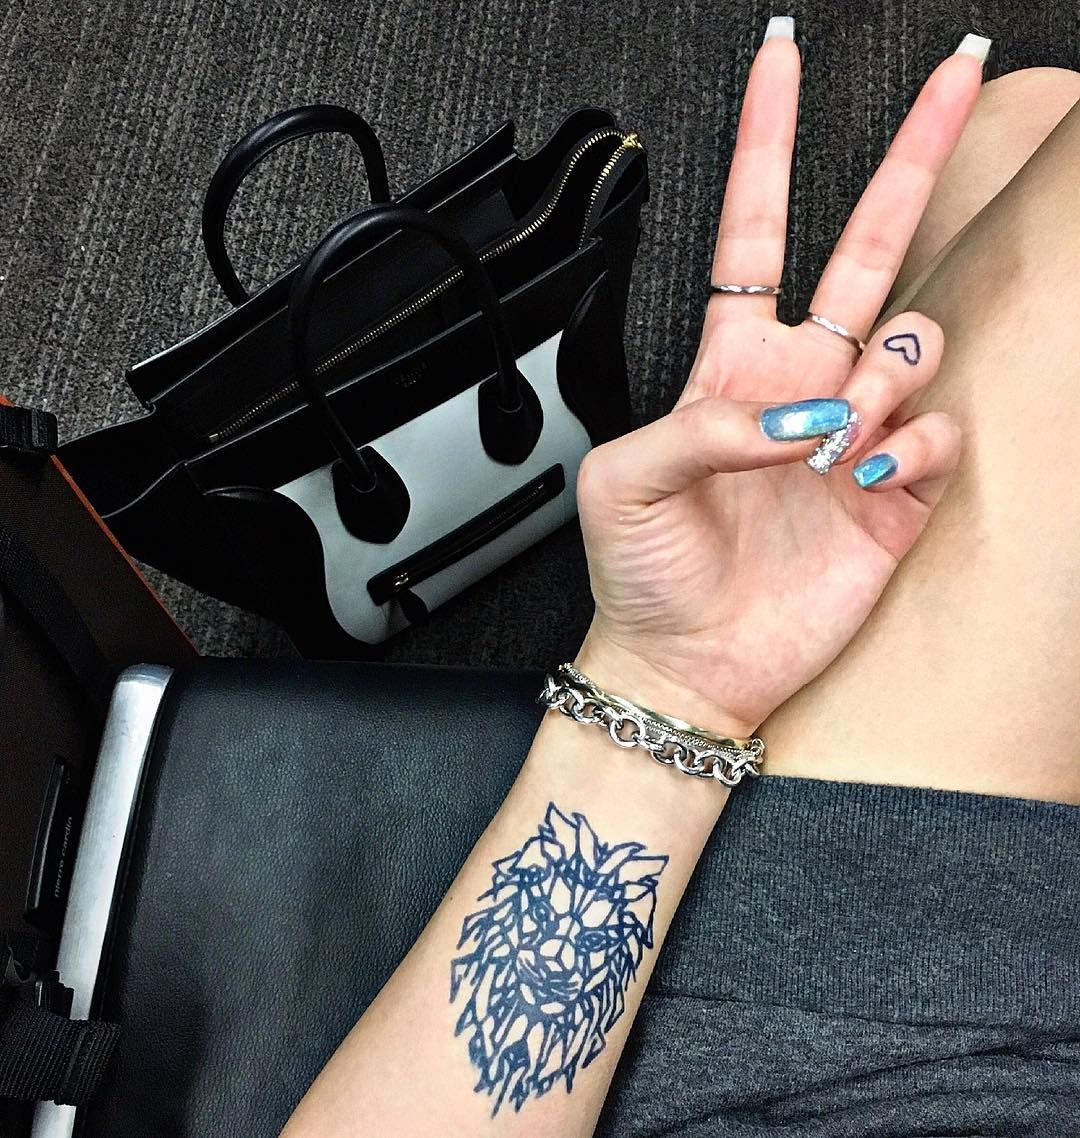 930559fddb93a Peace out commitment— inkbox tattoos look and feel like real tattoos but  only last for two weeks! #inkbox #inkboxlove #2weektattoo #tattoo